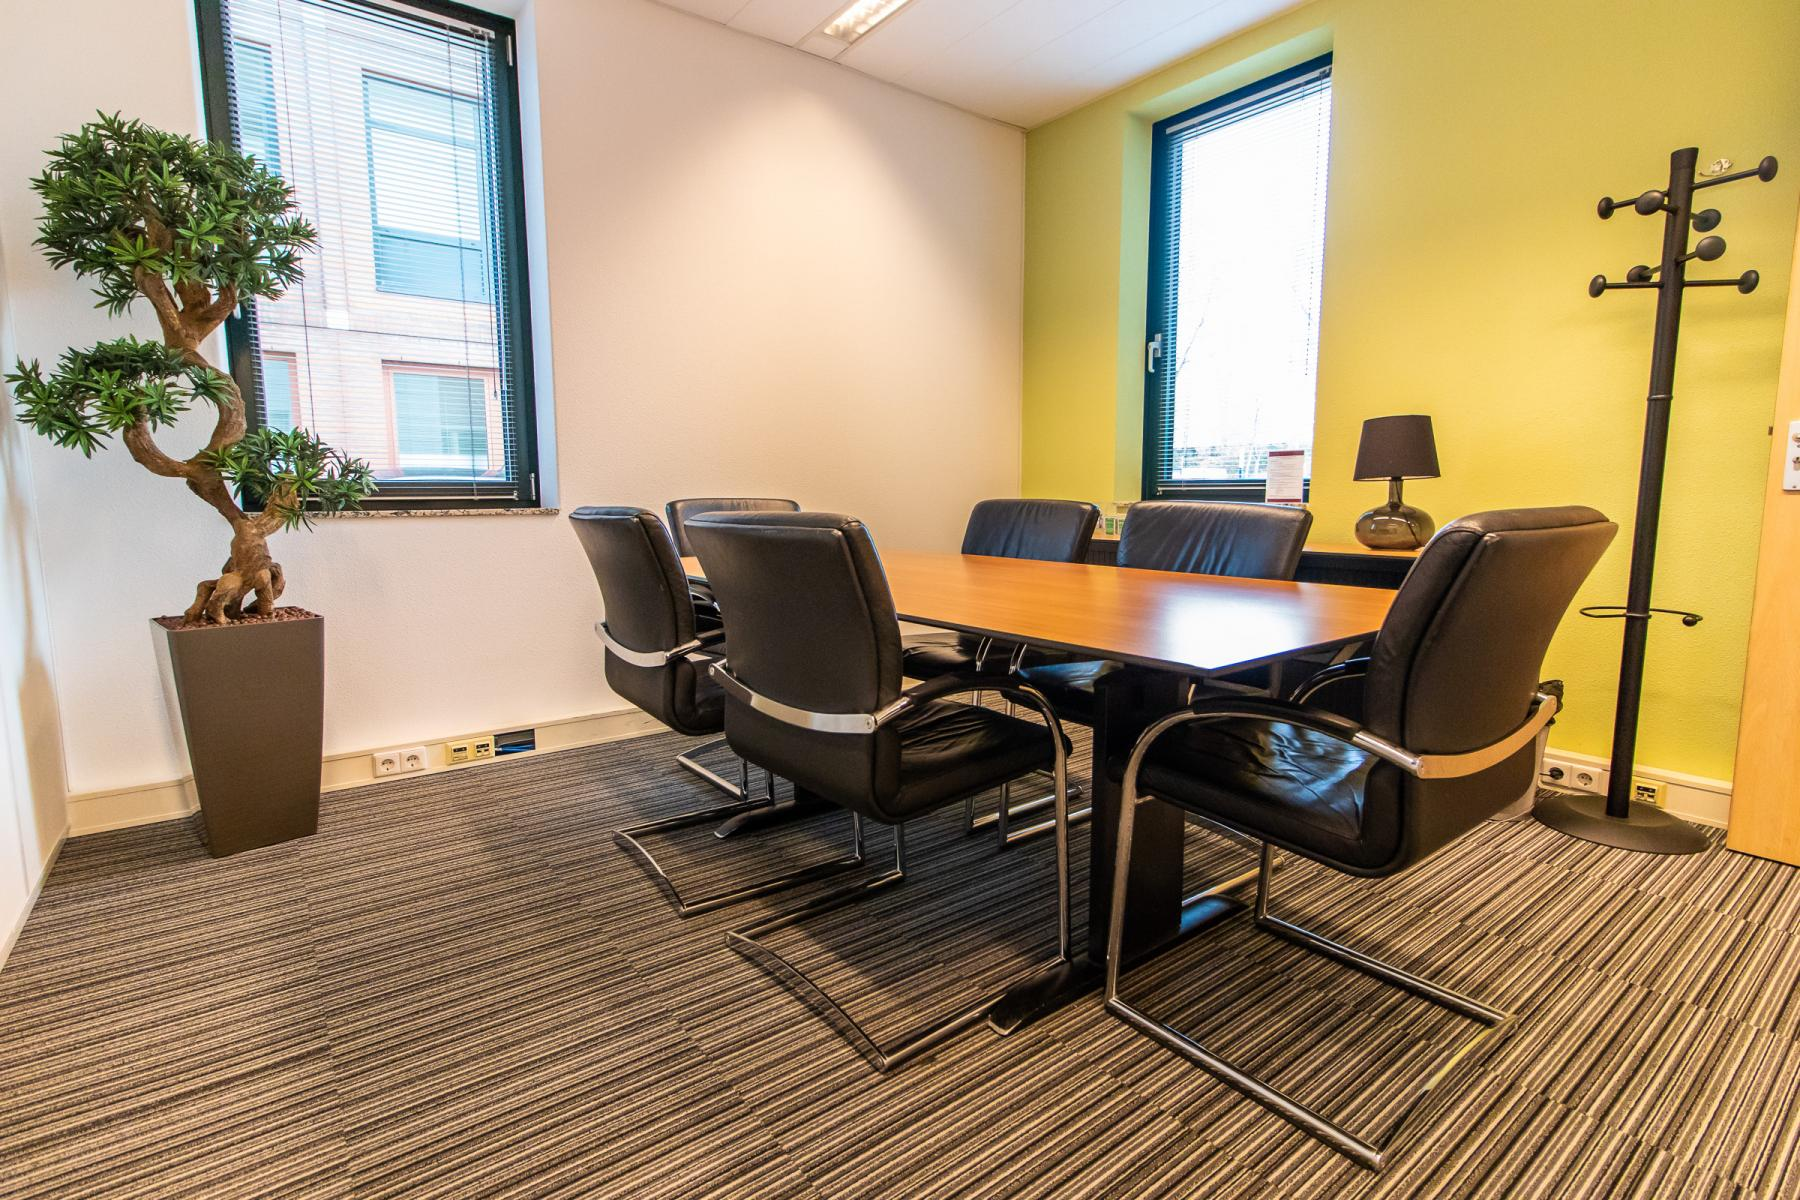 Meeting rooms available to all